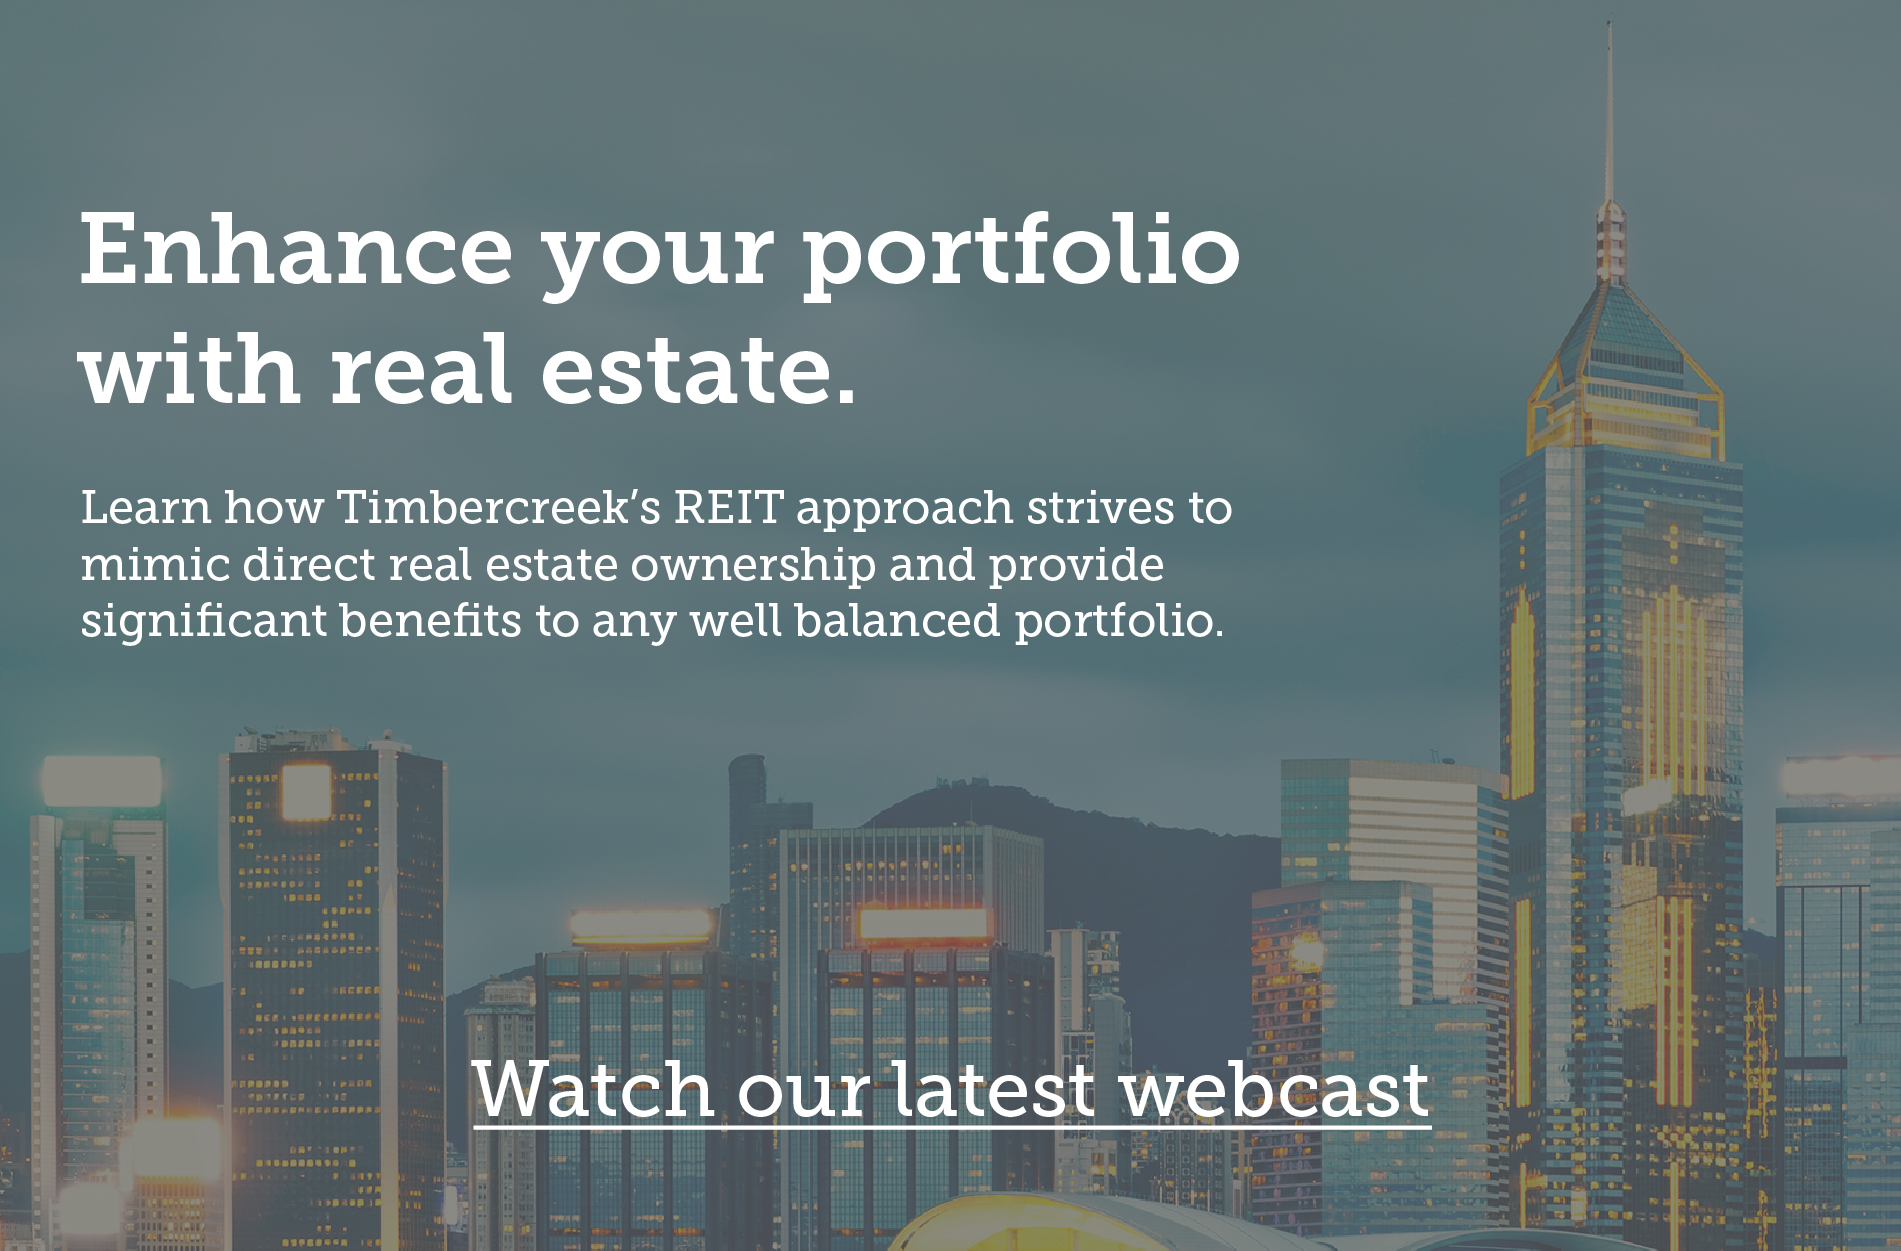 Watch our latest webcast to enhance your portfolio with real estate